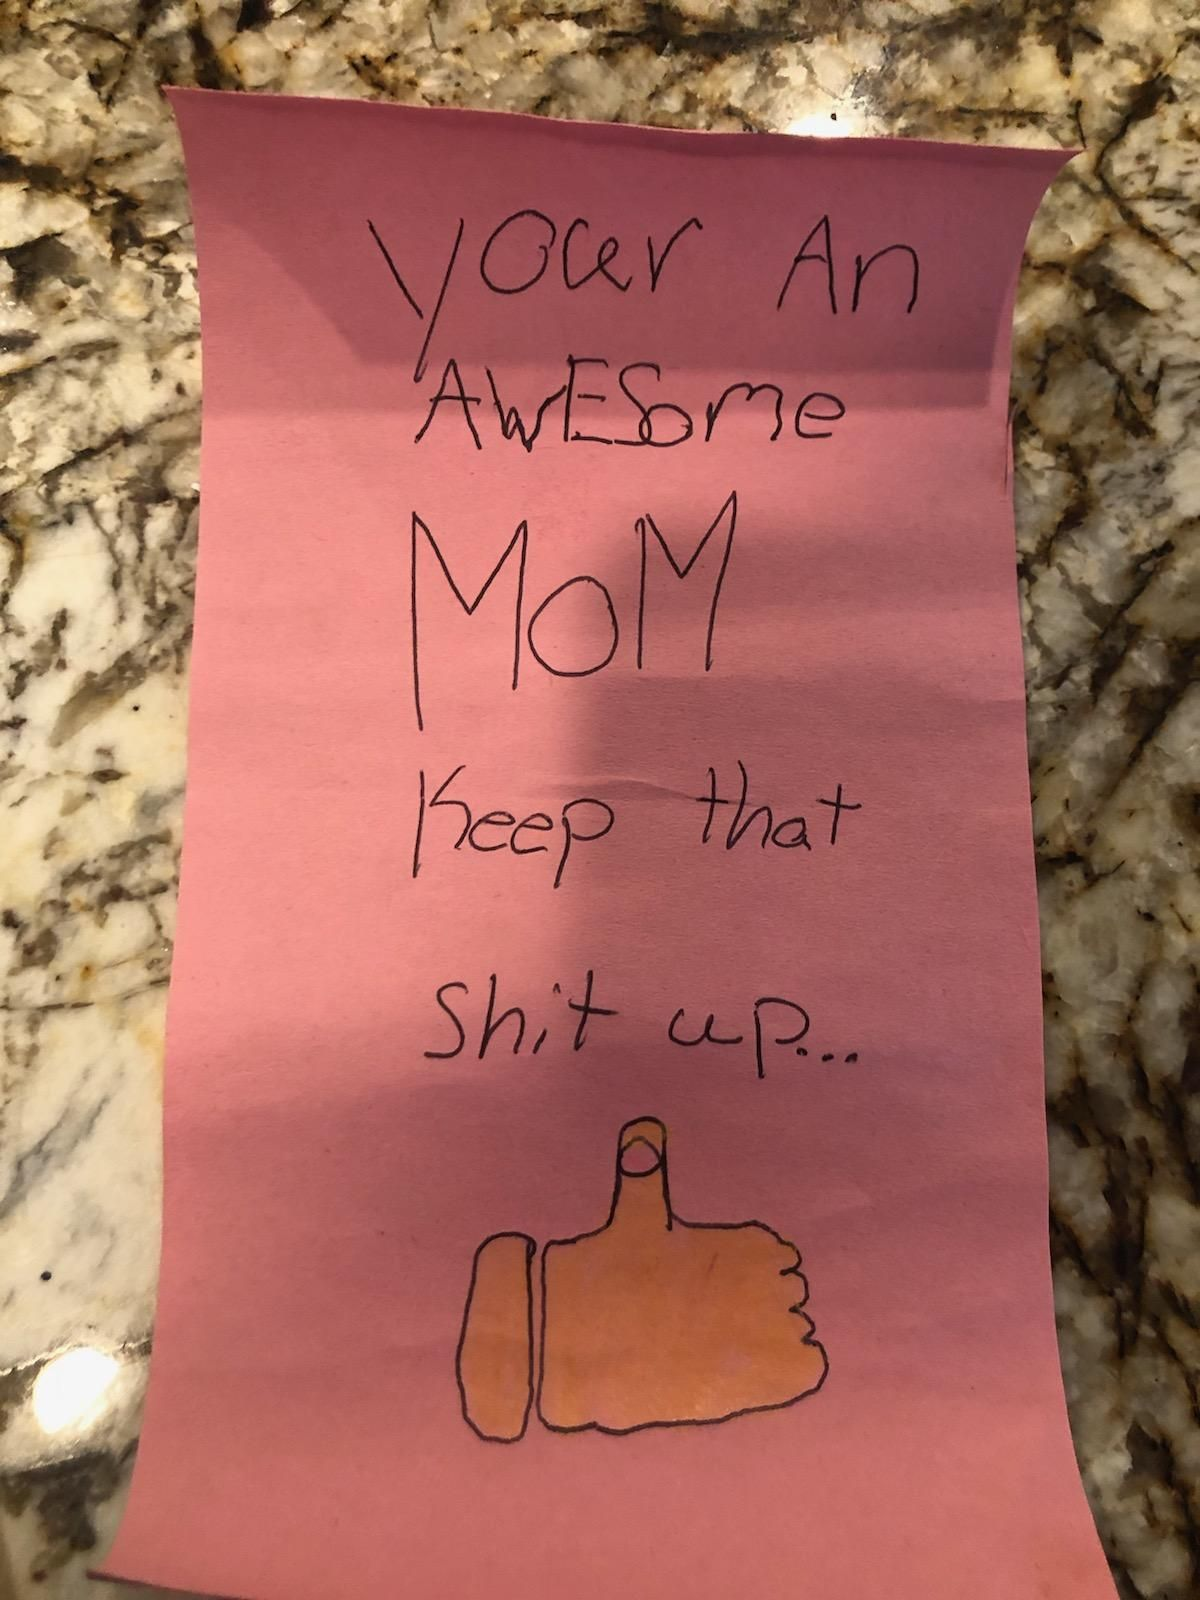 My eight year old daughter asked if she could make a funny mother's day card with one bad word.